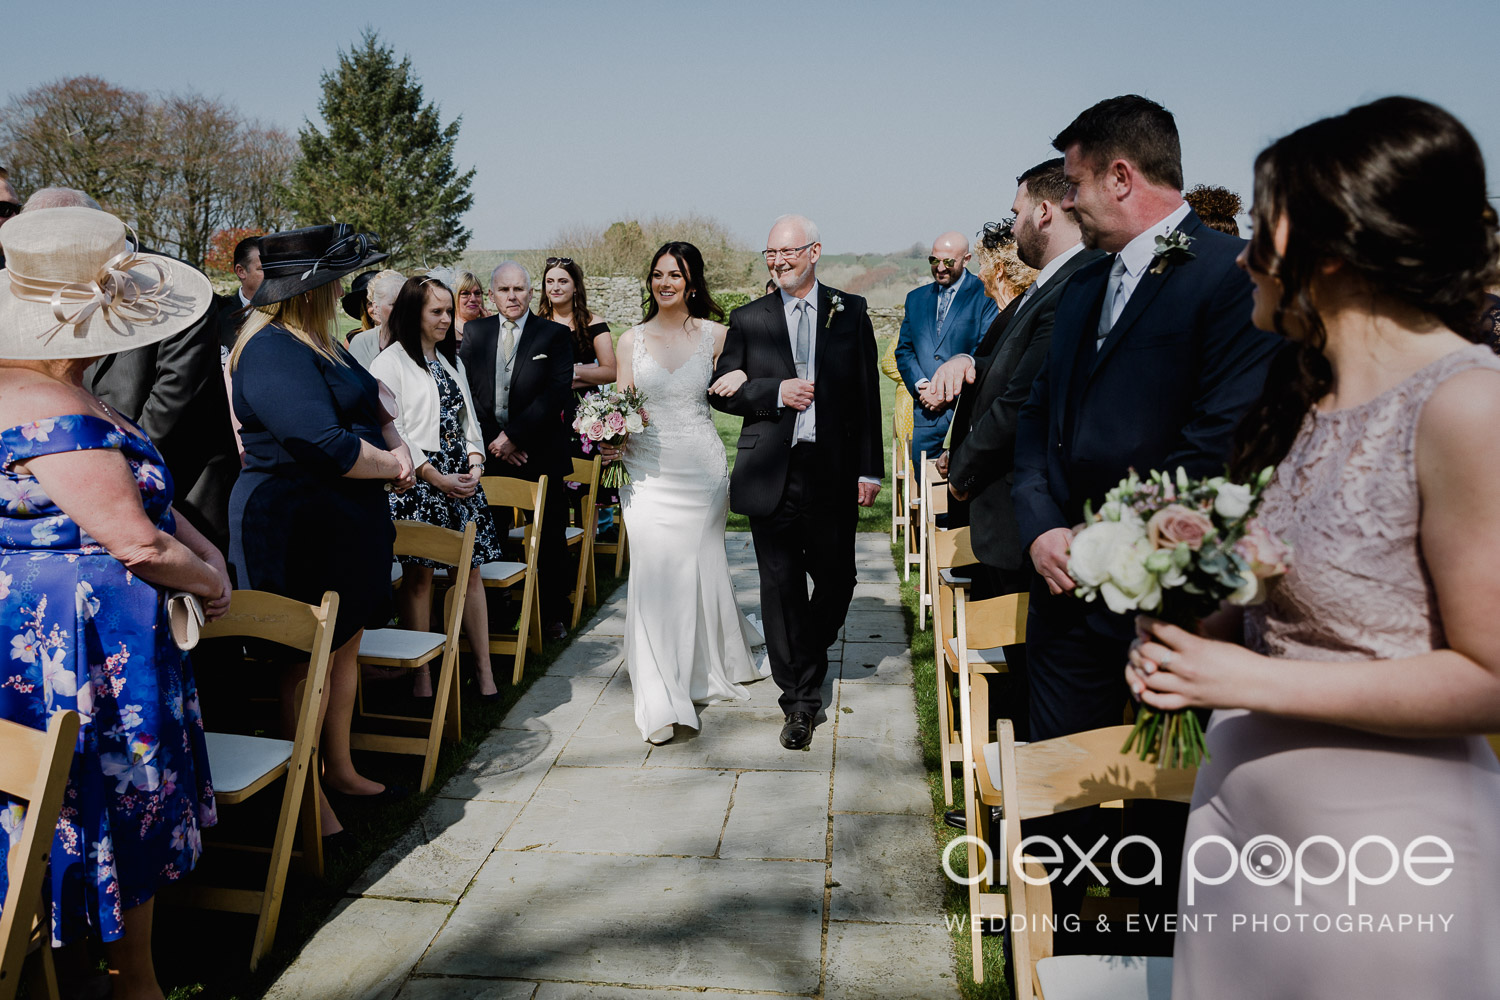 BJ_wedding_trevenna-18.jpg